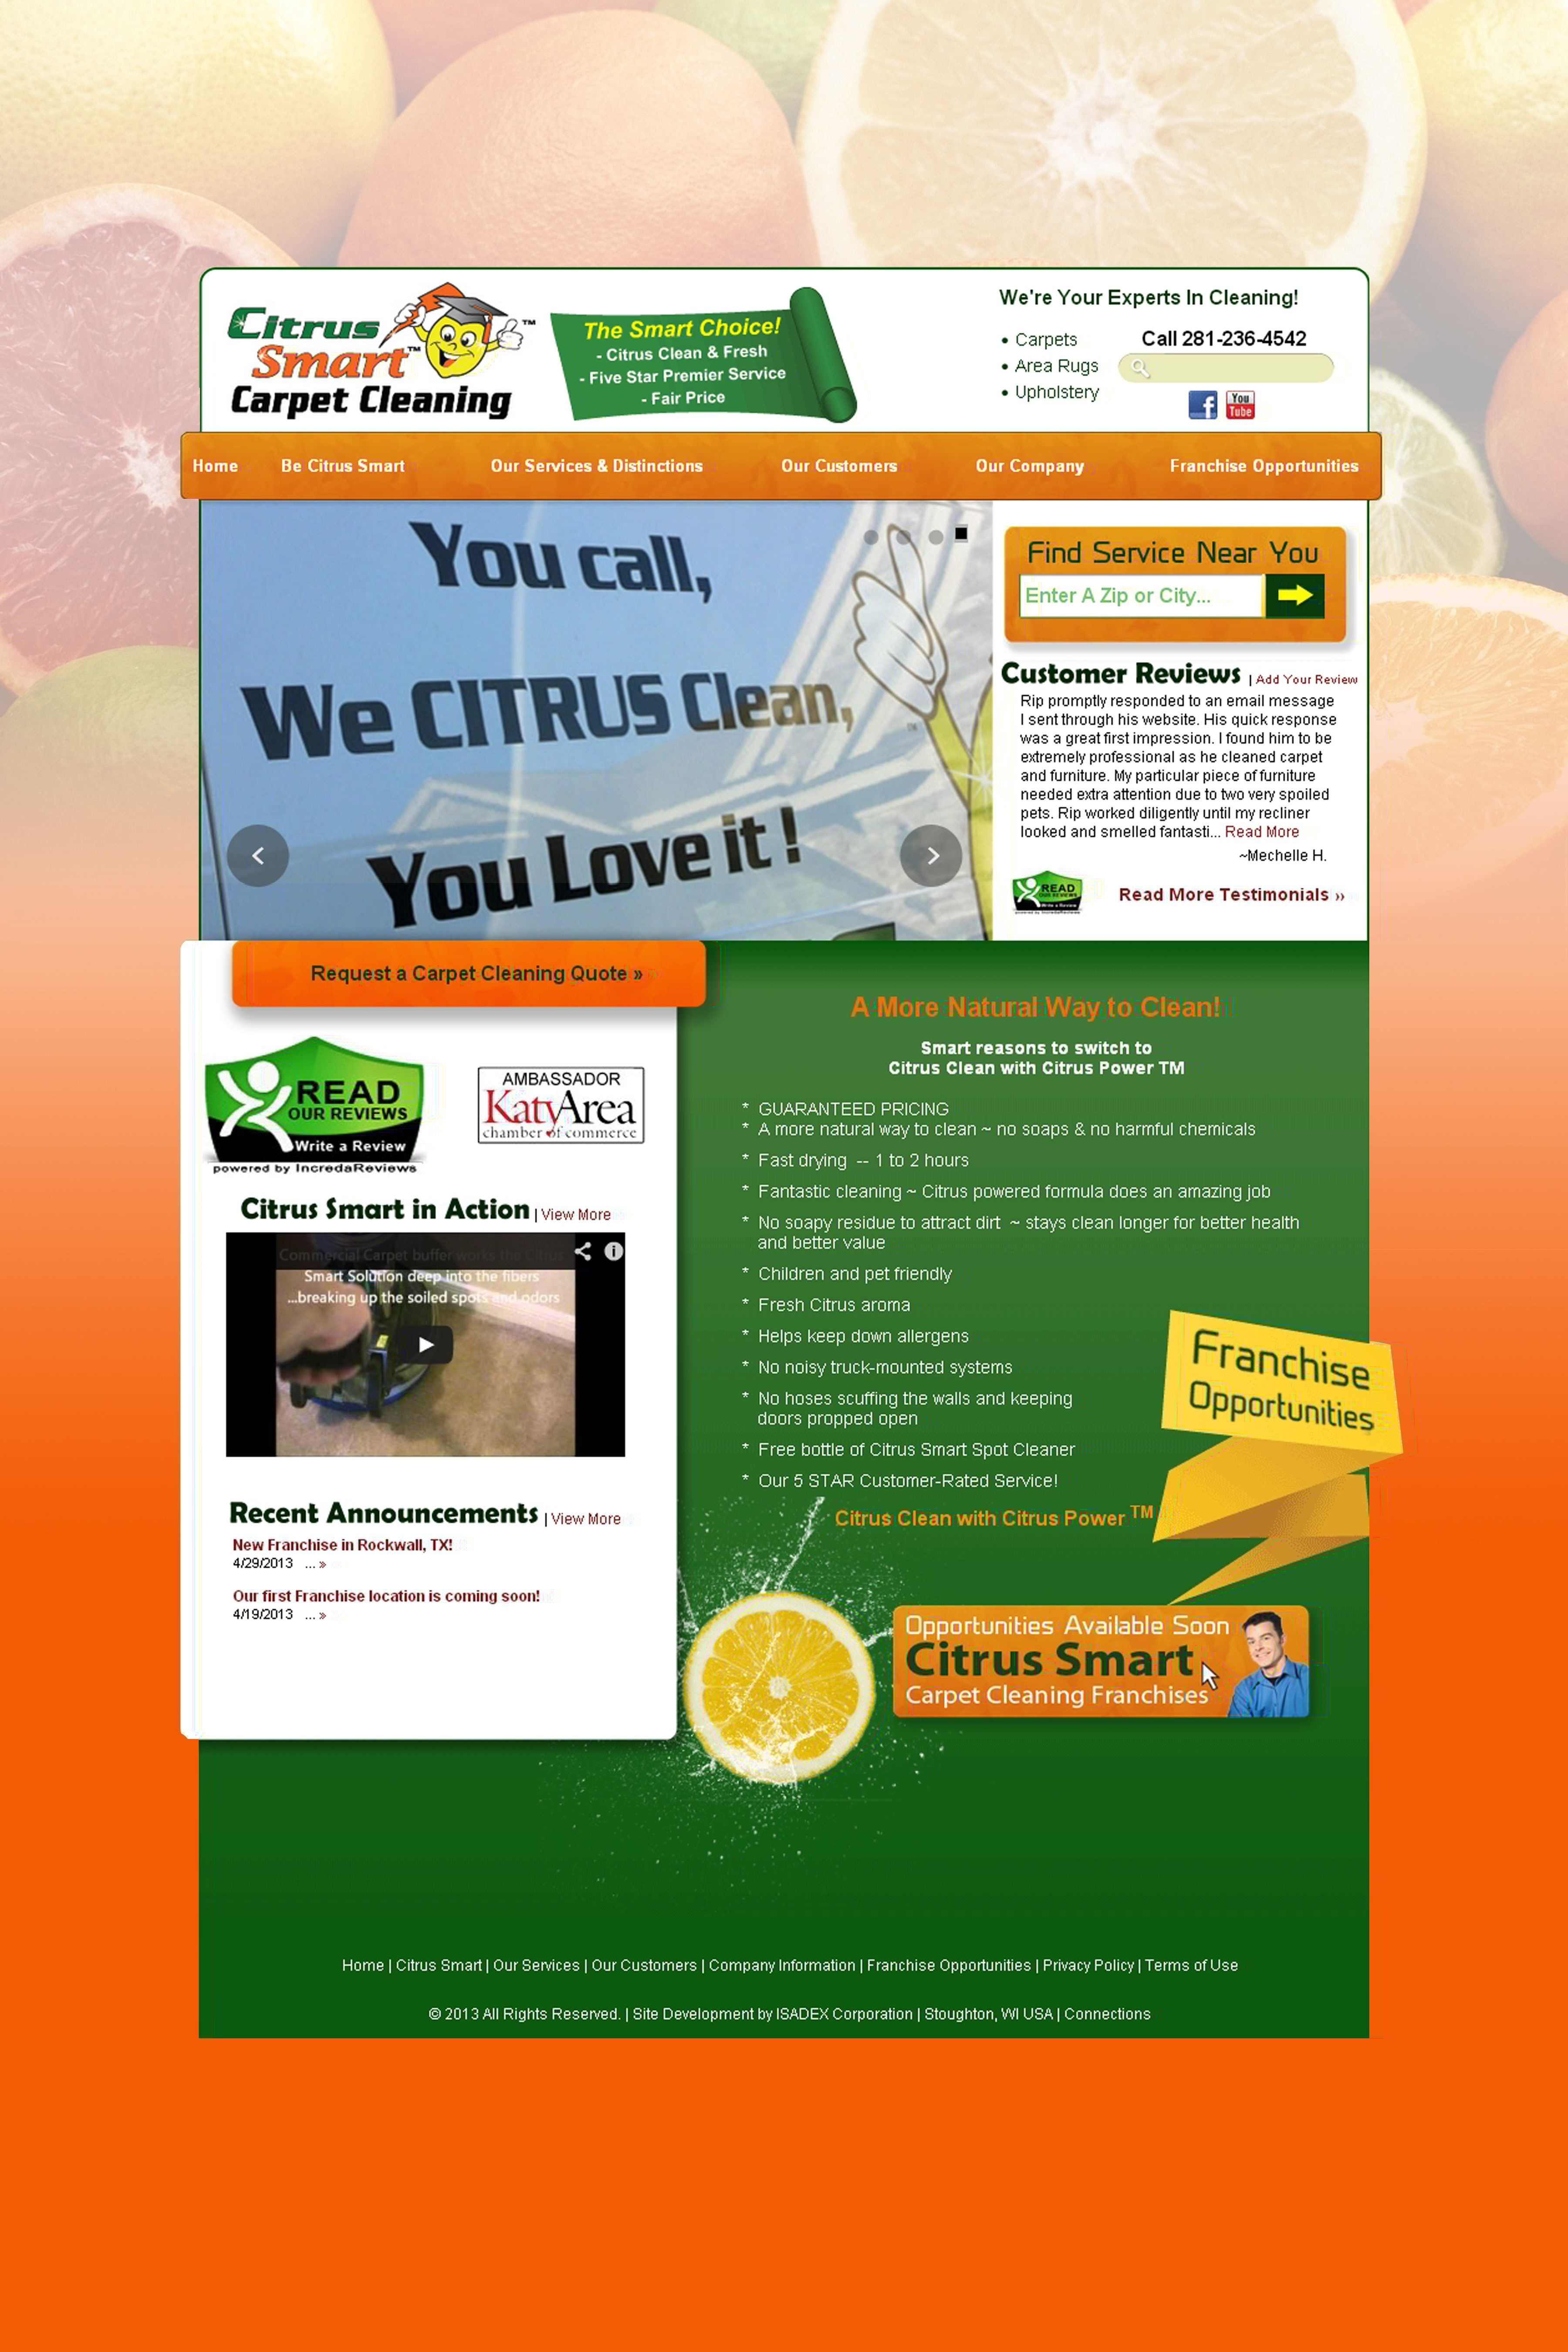 Be Citrus Smart Carpet Cleaning Carpet Cleaning Franchise Located In Katy Texas You Call We Citrus Cl How To Clean Carpet Cleaning Franchise Citrus Clean